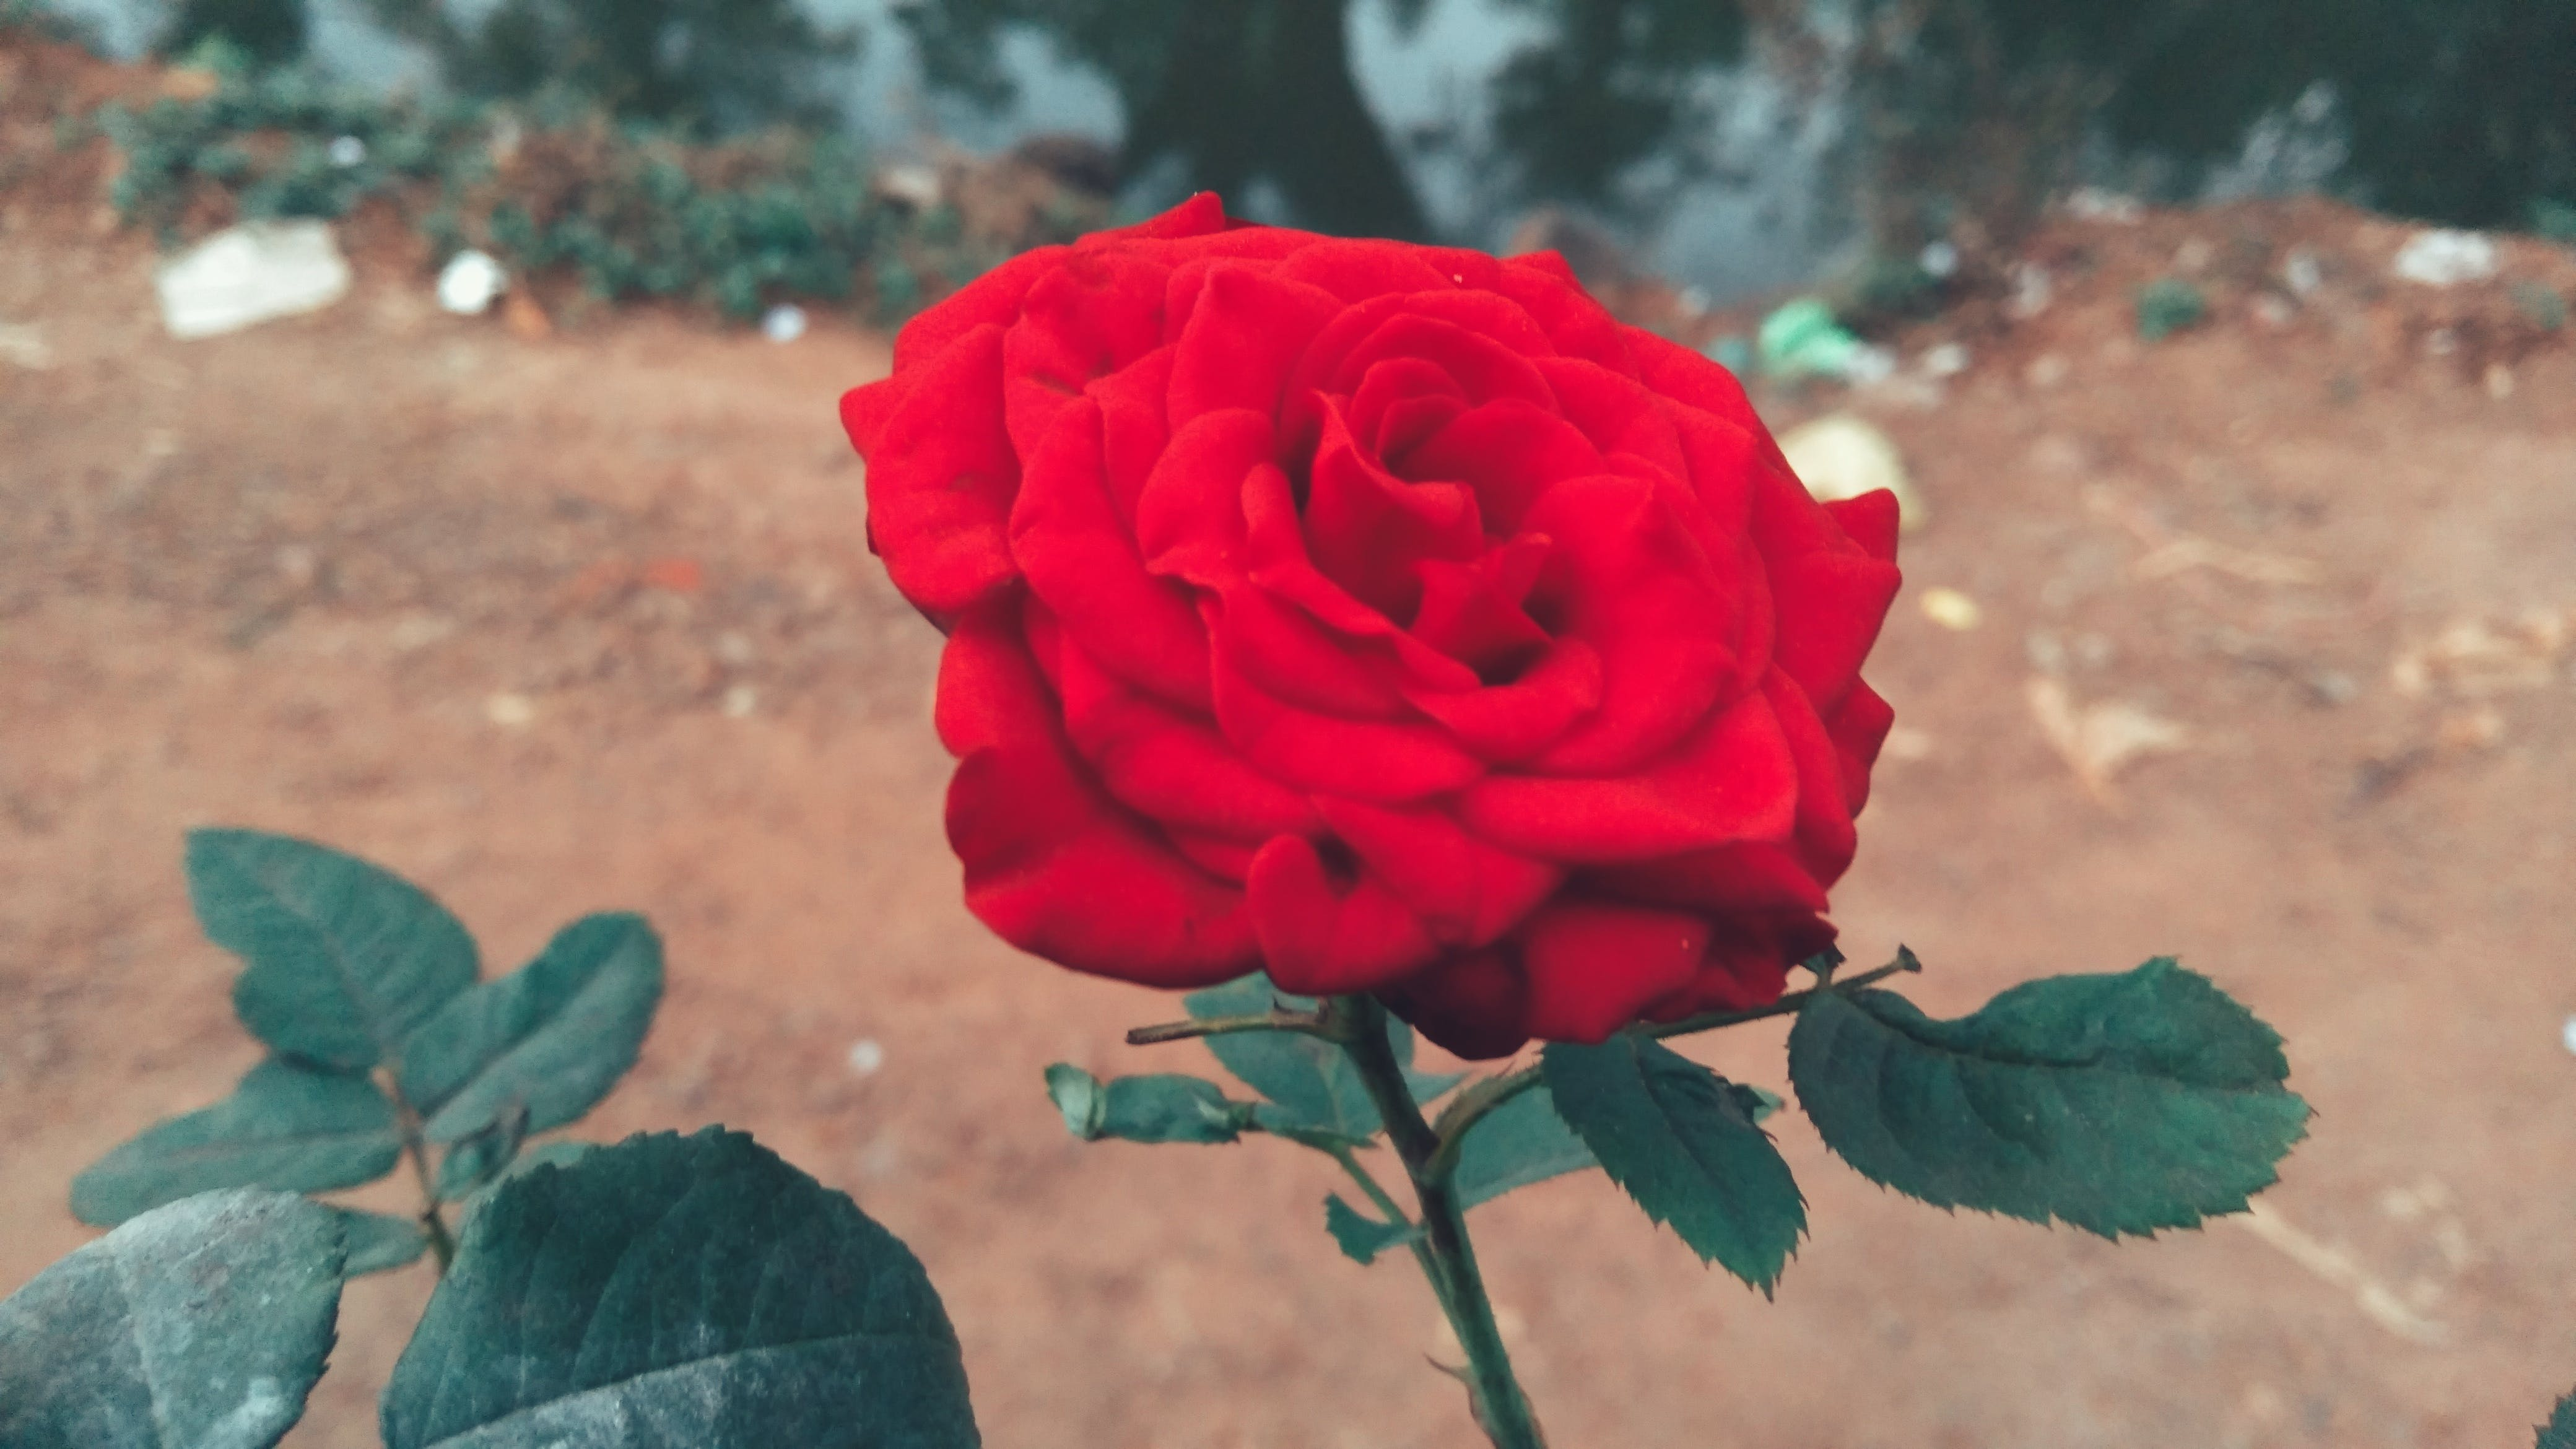 Free stock photo of Red Rose, valentine's day